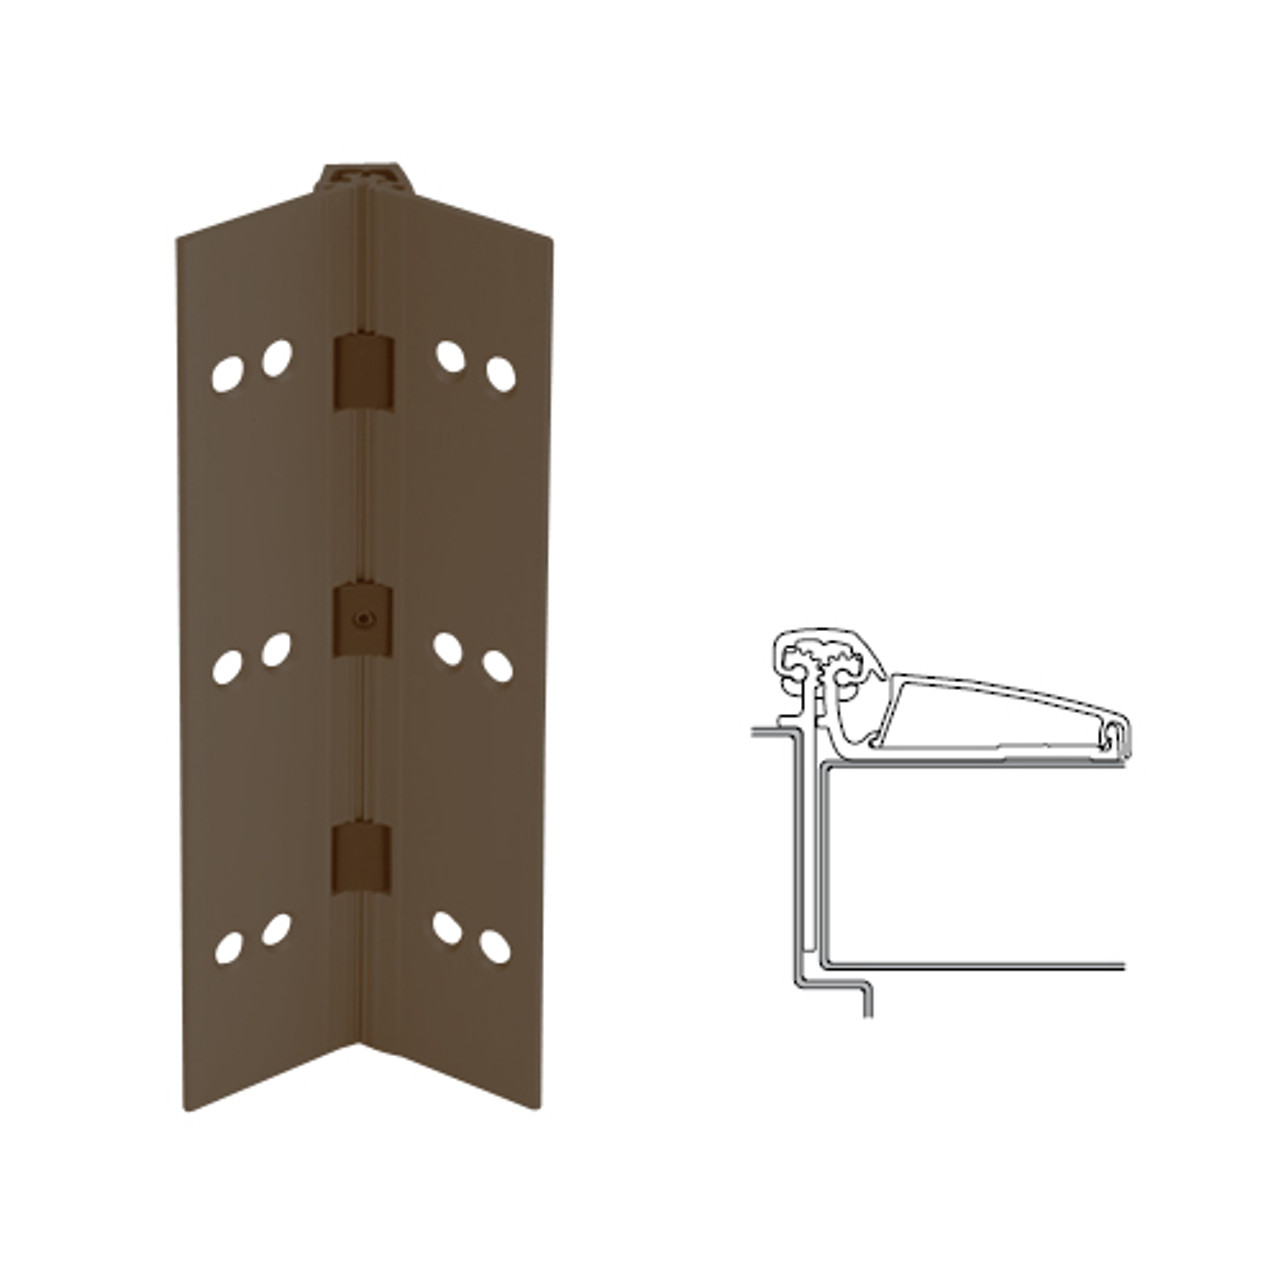 046XY-313AN-85-WD IVES Adjustable Half Surface Continuous Geared Hinges with Wood Screws in Dark Bronze Anodized